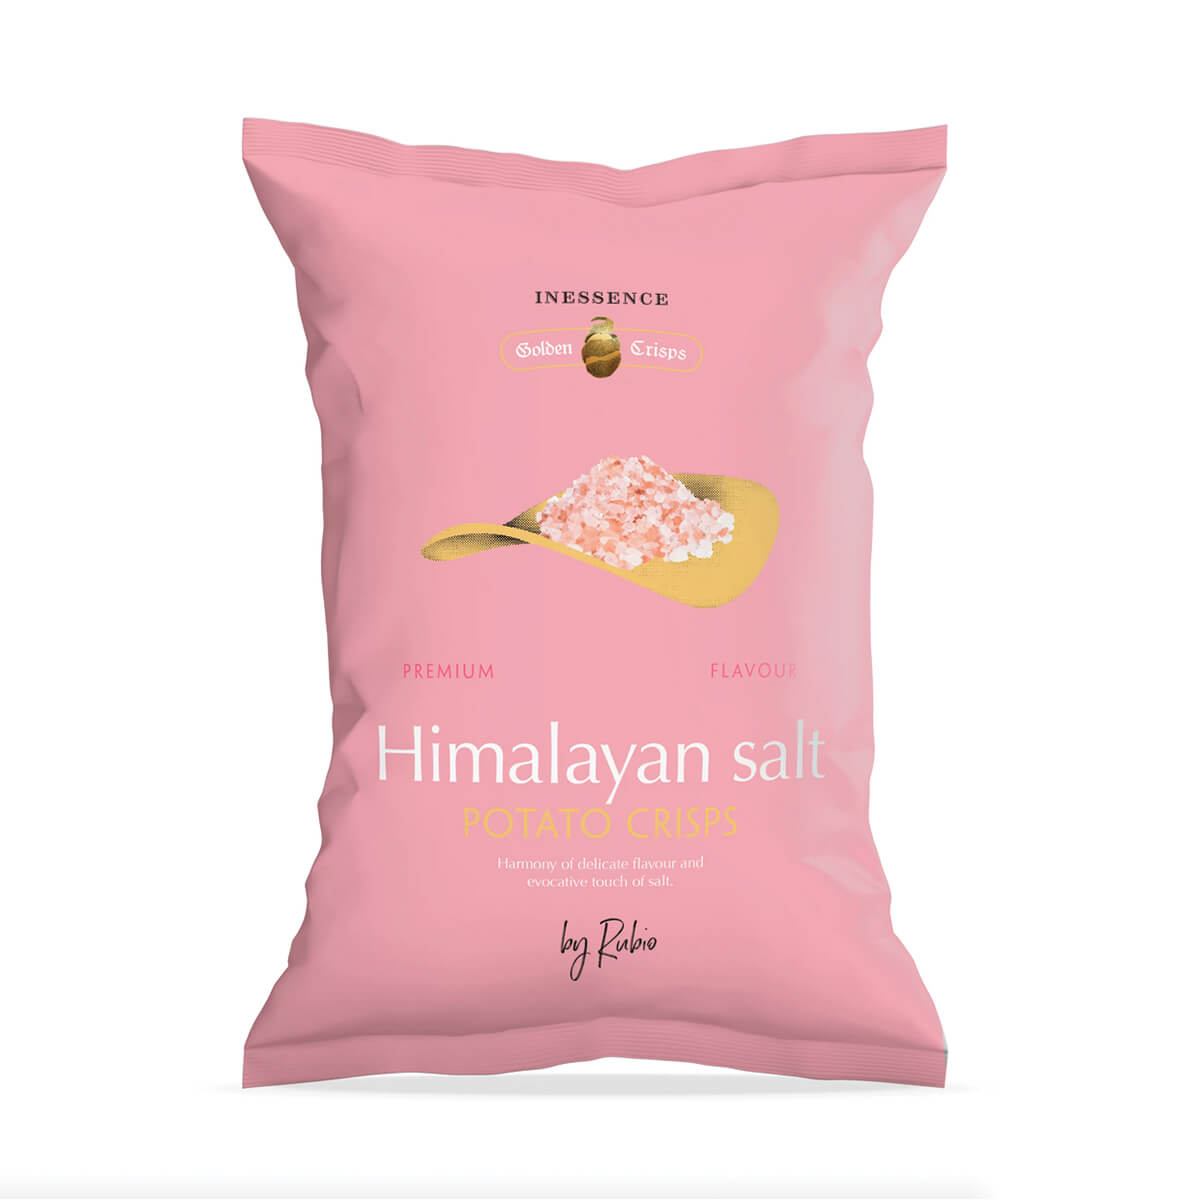 Inessence Potato Chips Rose Himalayan Salt Flavoured